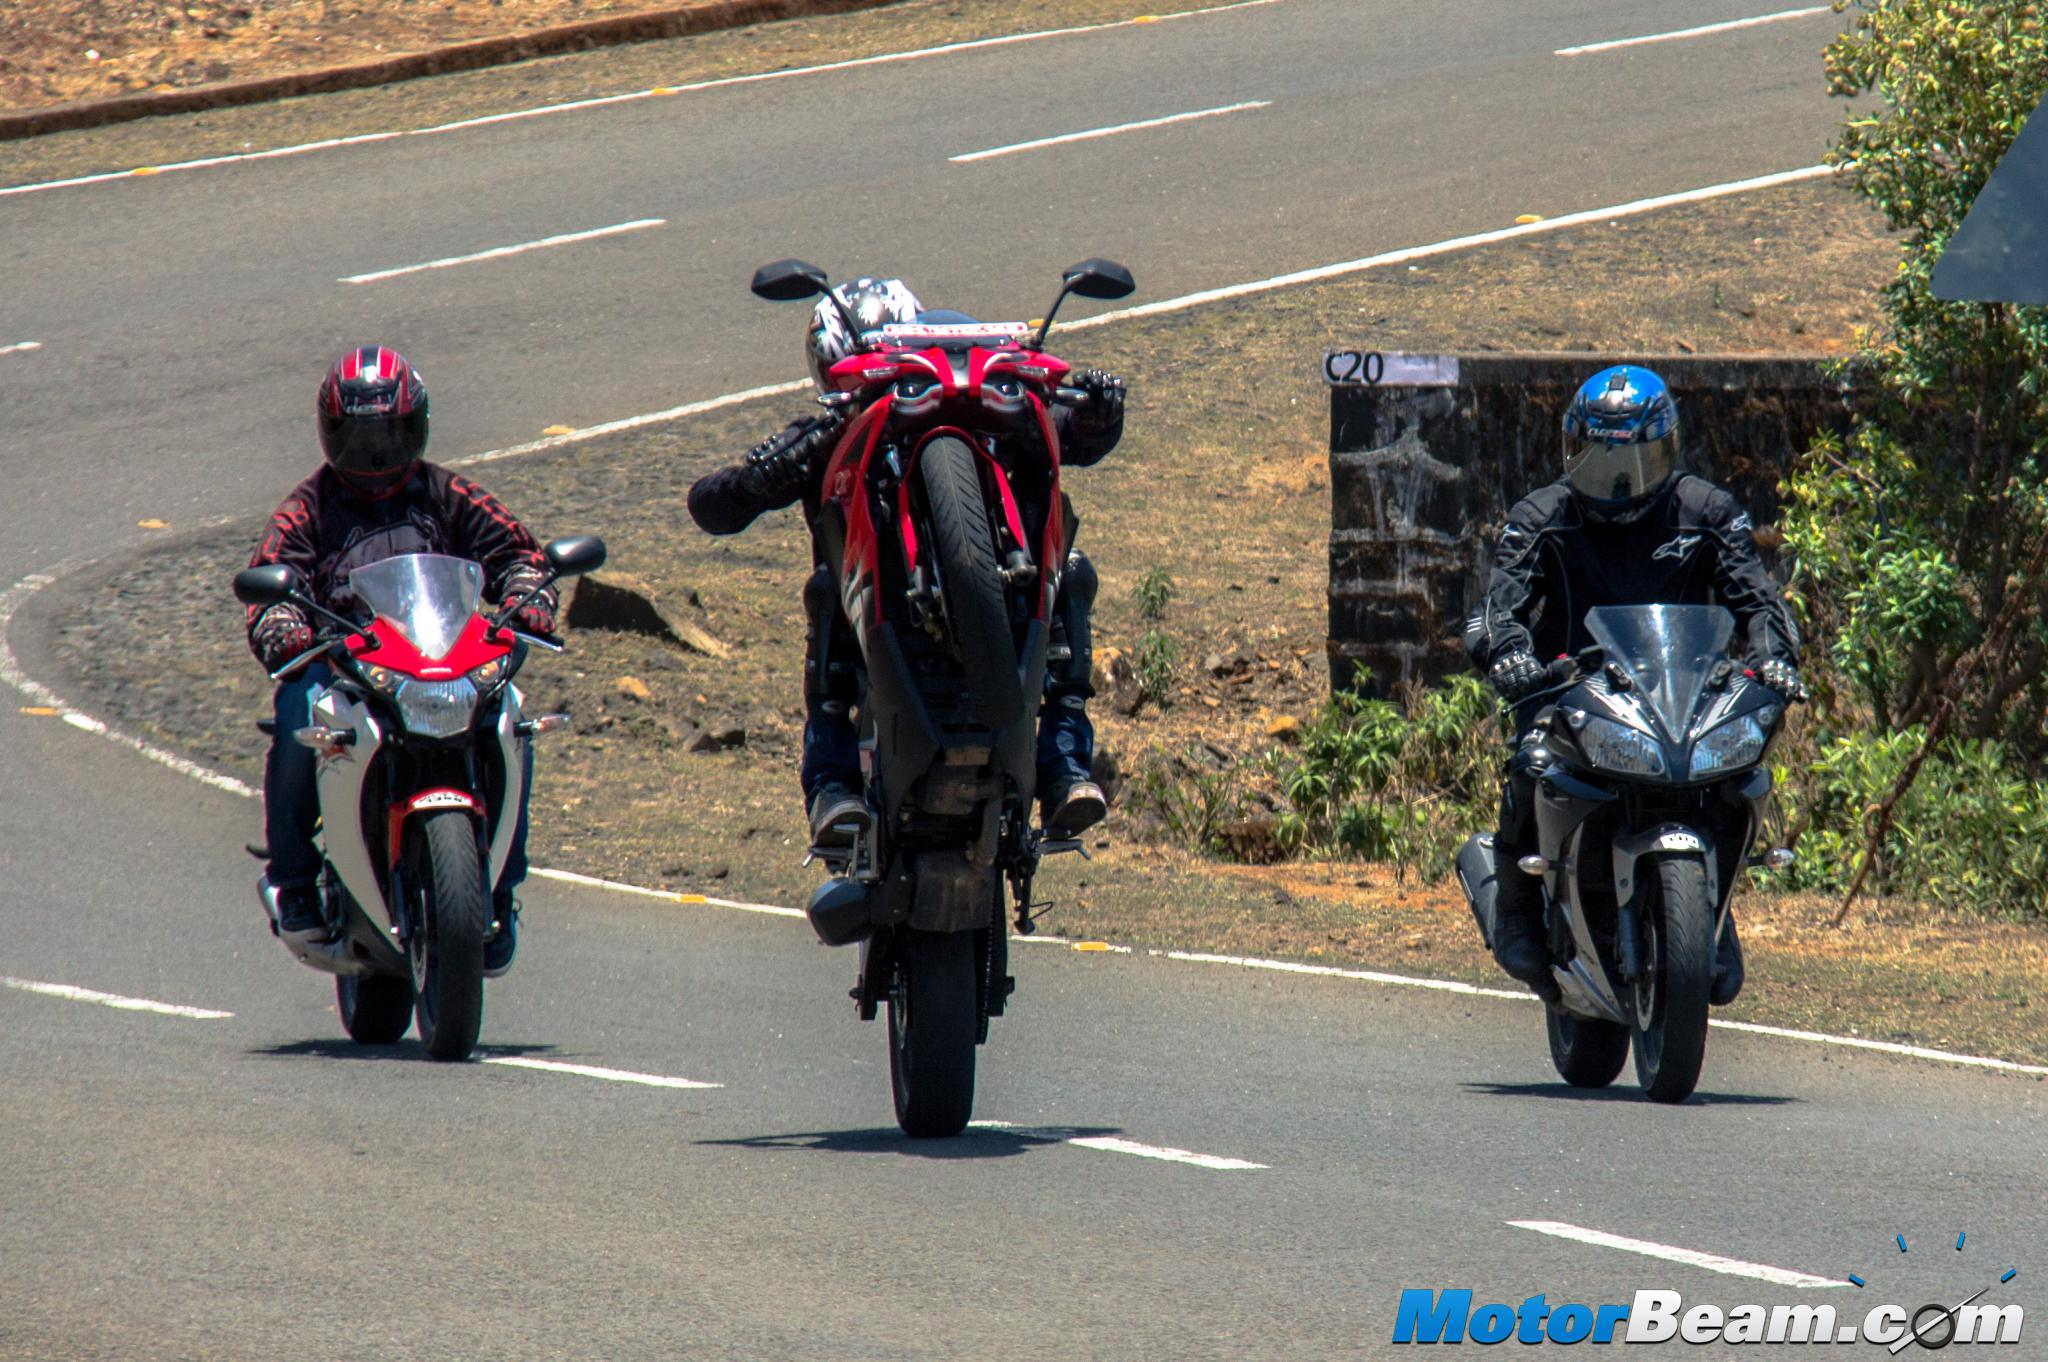 Yamaha R15 vs Pulsar RS 200 vs Honda CBR150R ReviewYamaha R15 vs Pulsar RS 200 vs Honda CBR150R Review